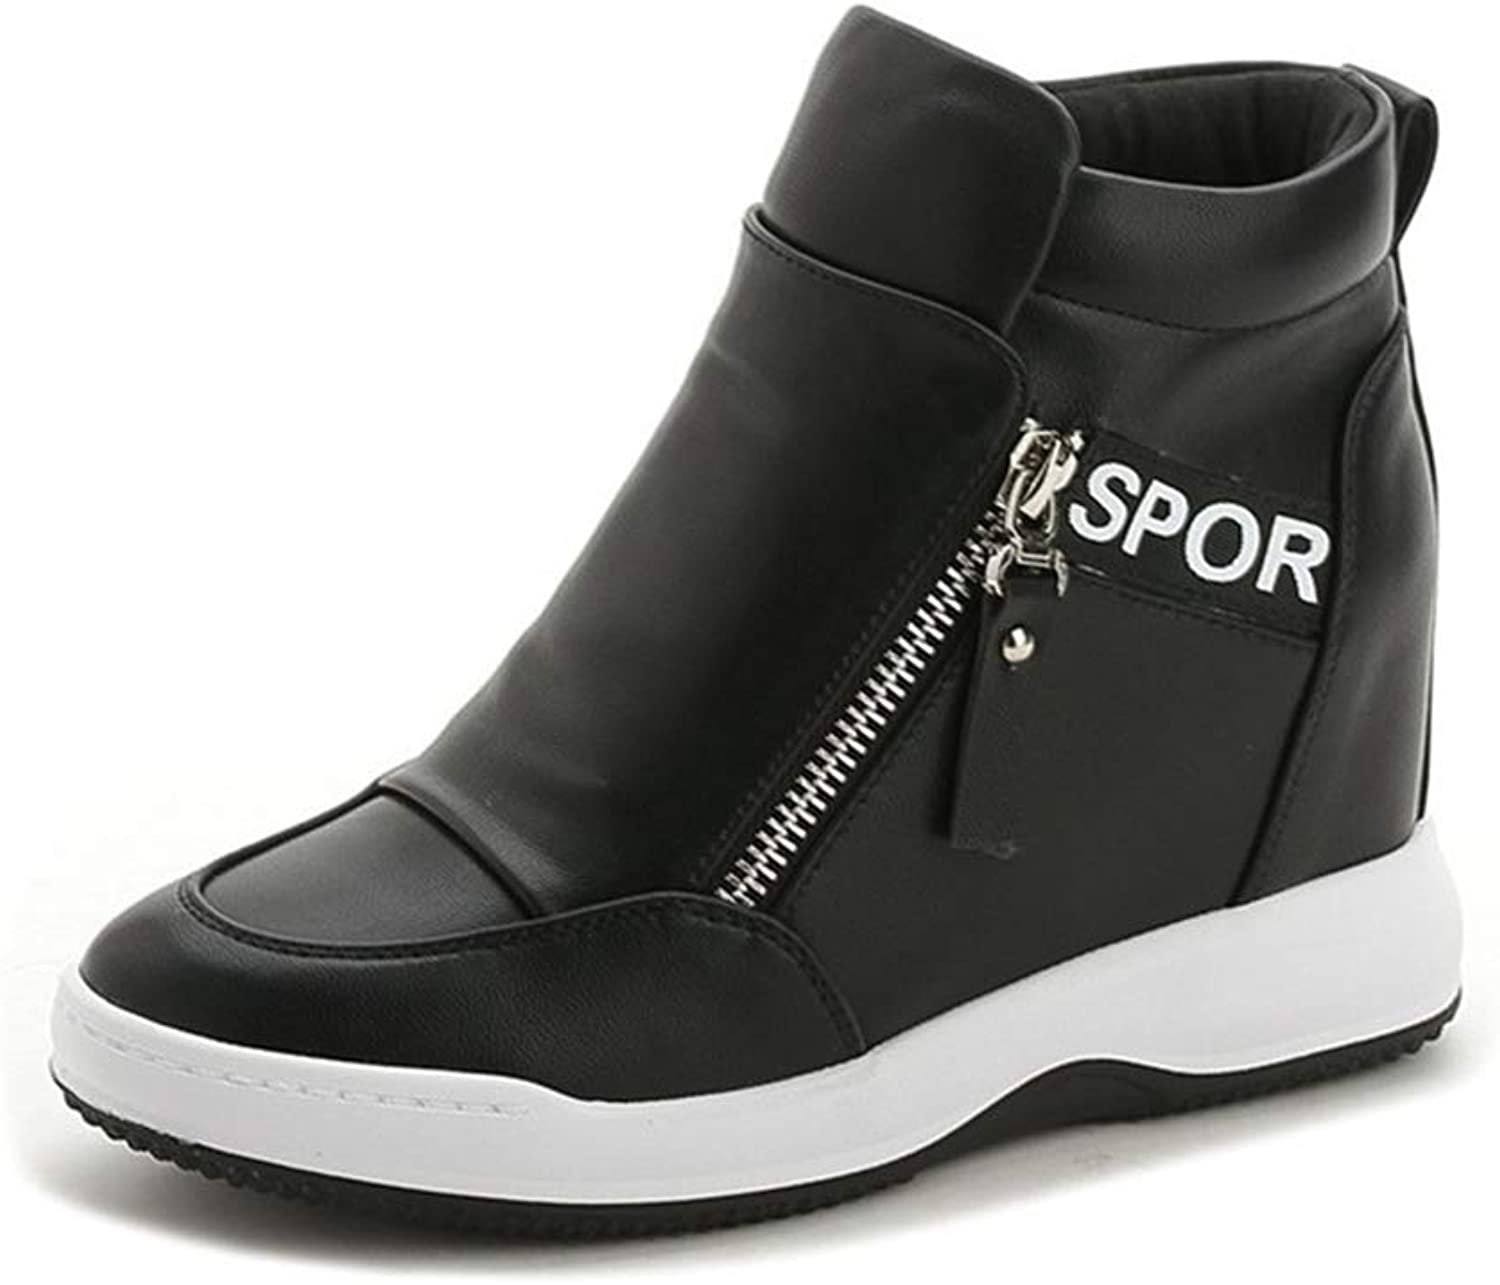 T-JULY Height Increasing Luxury shoes Women Designers Platform Sneakers shoes Wedges shoes for Women Black White silverformas